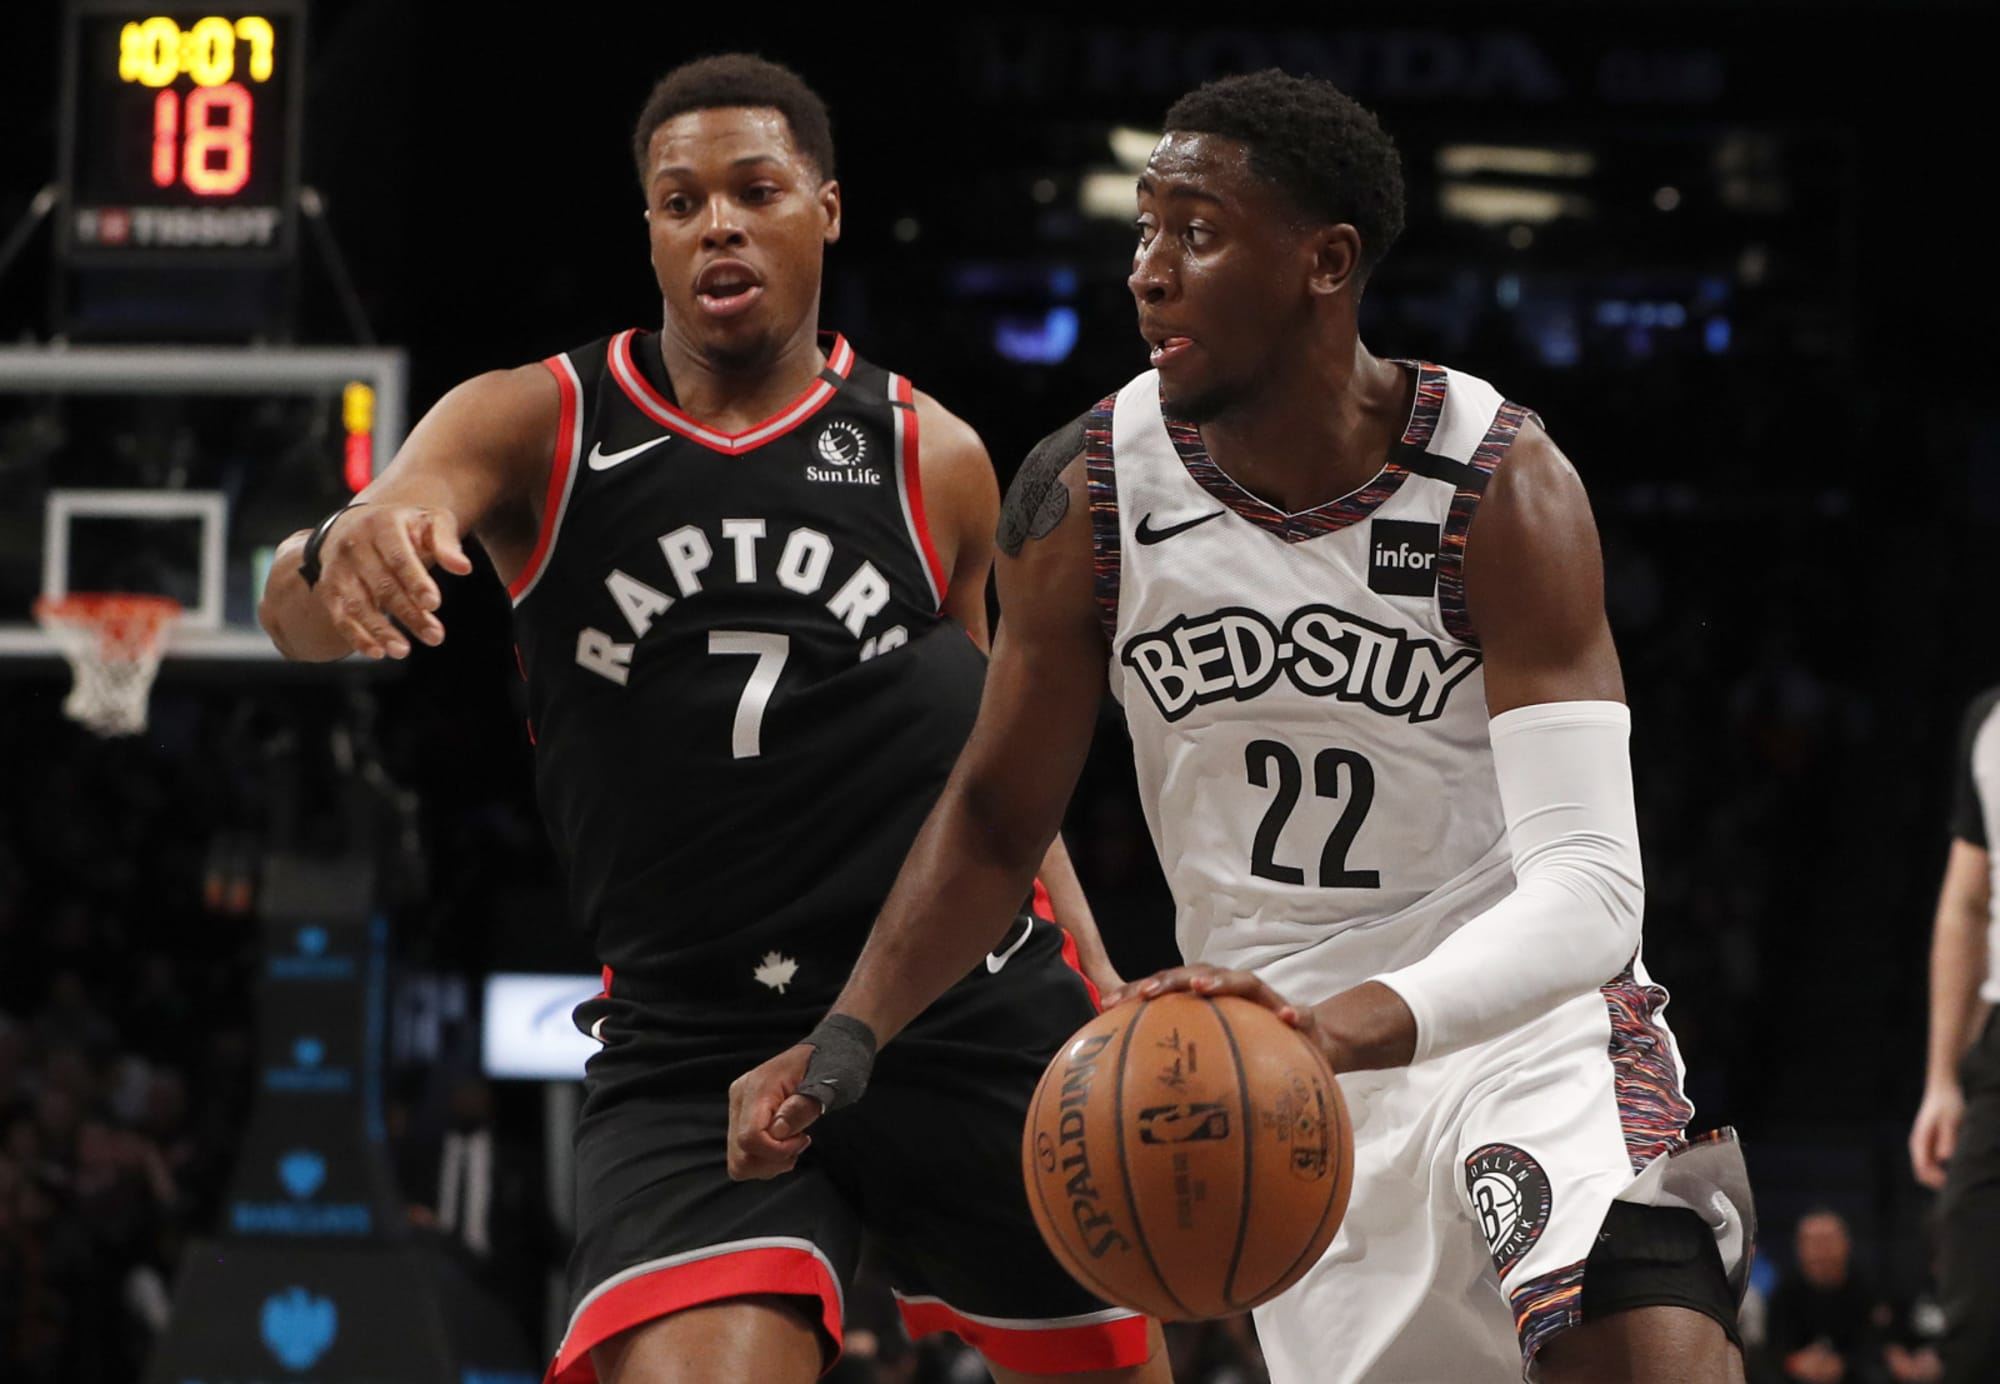 Nets Brooklyn Already Has A Third Star And His Name Is Caris Levert